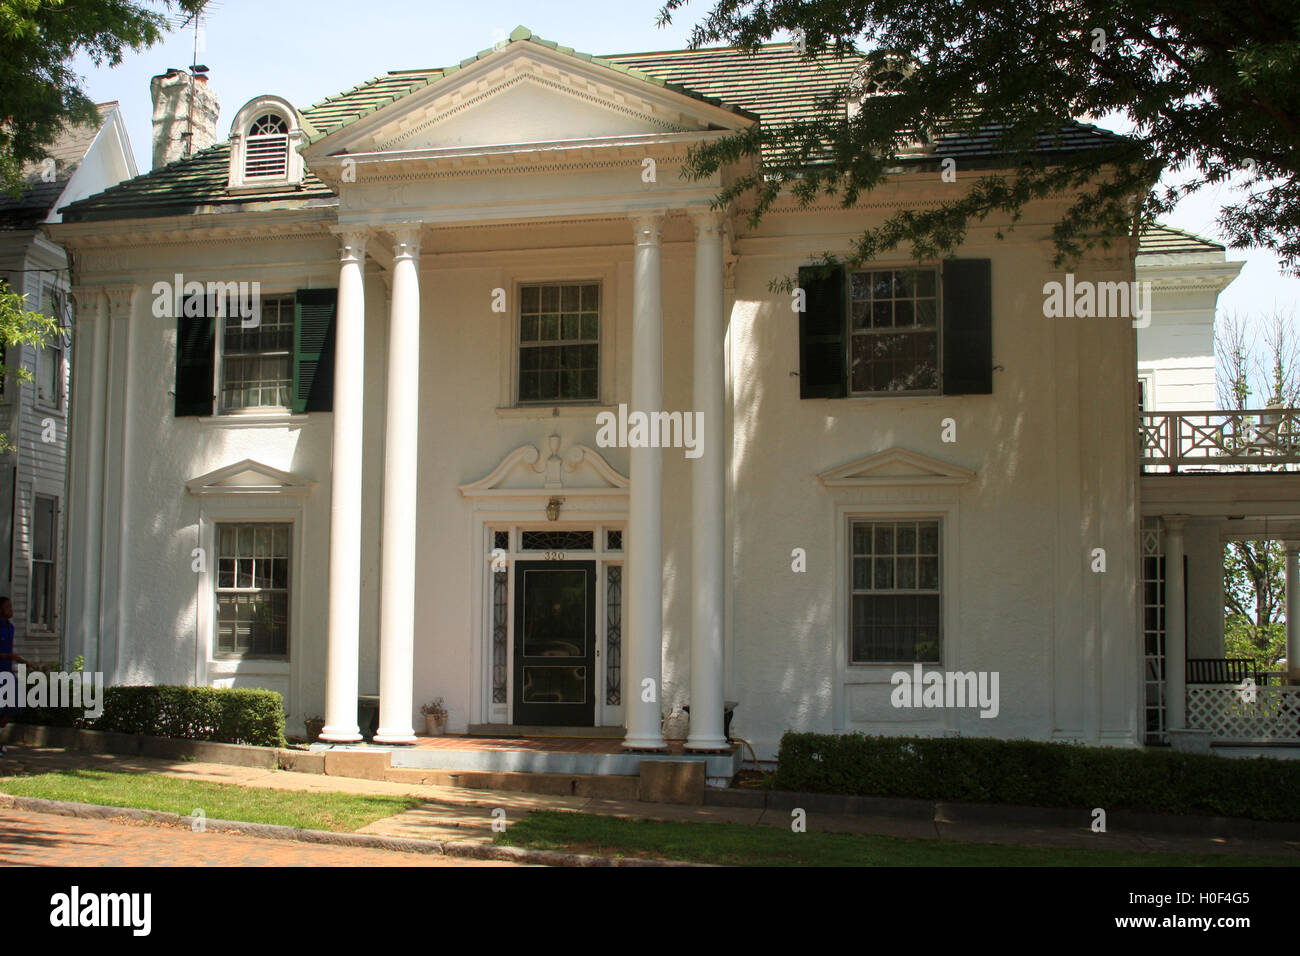 White house with columns in historic district of Lynchburg, Virginia